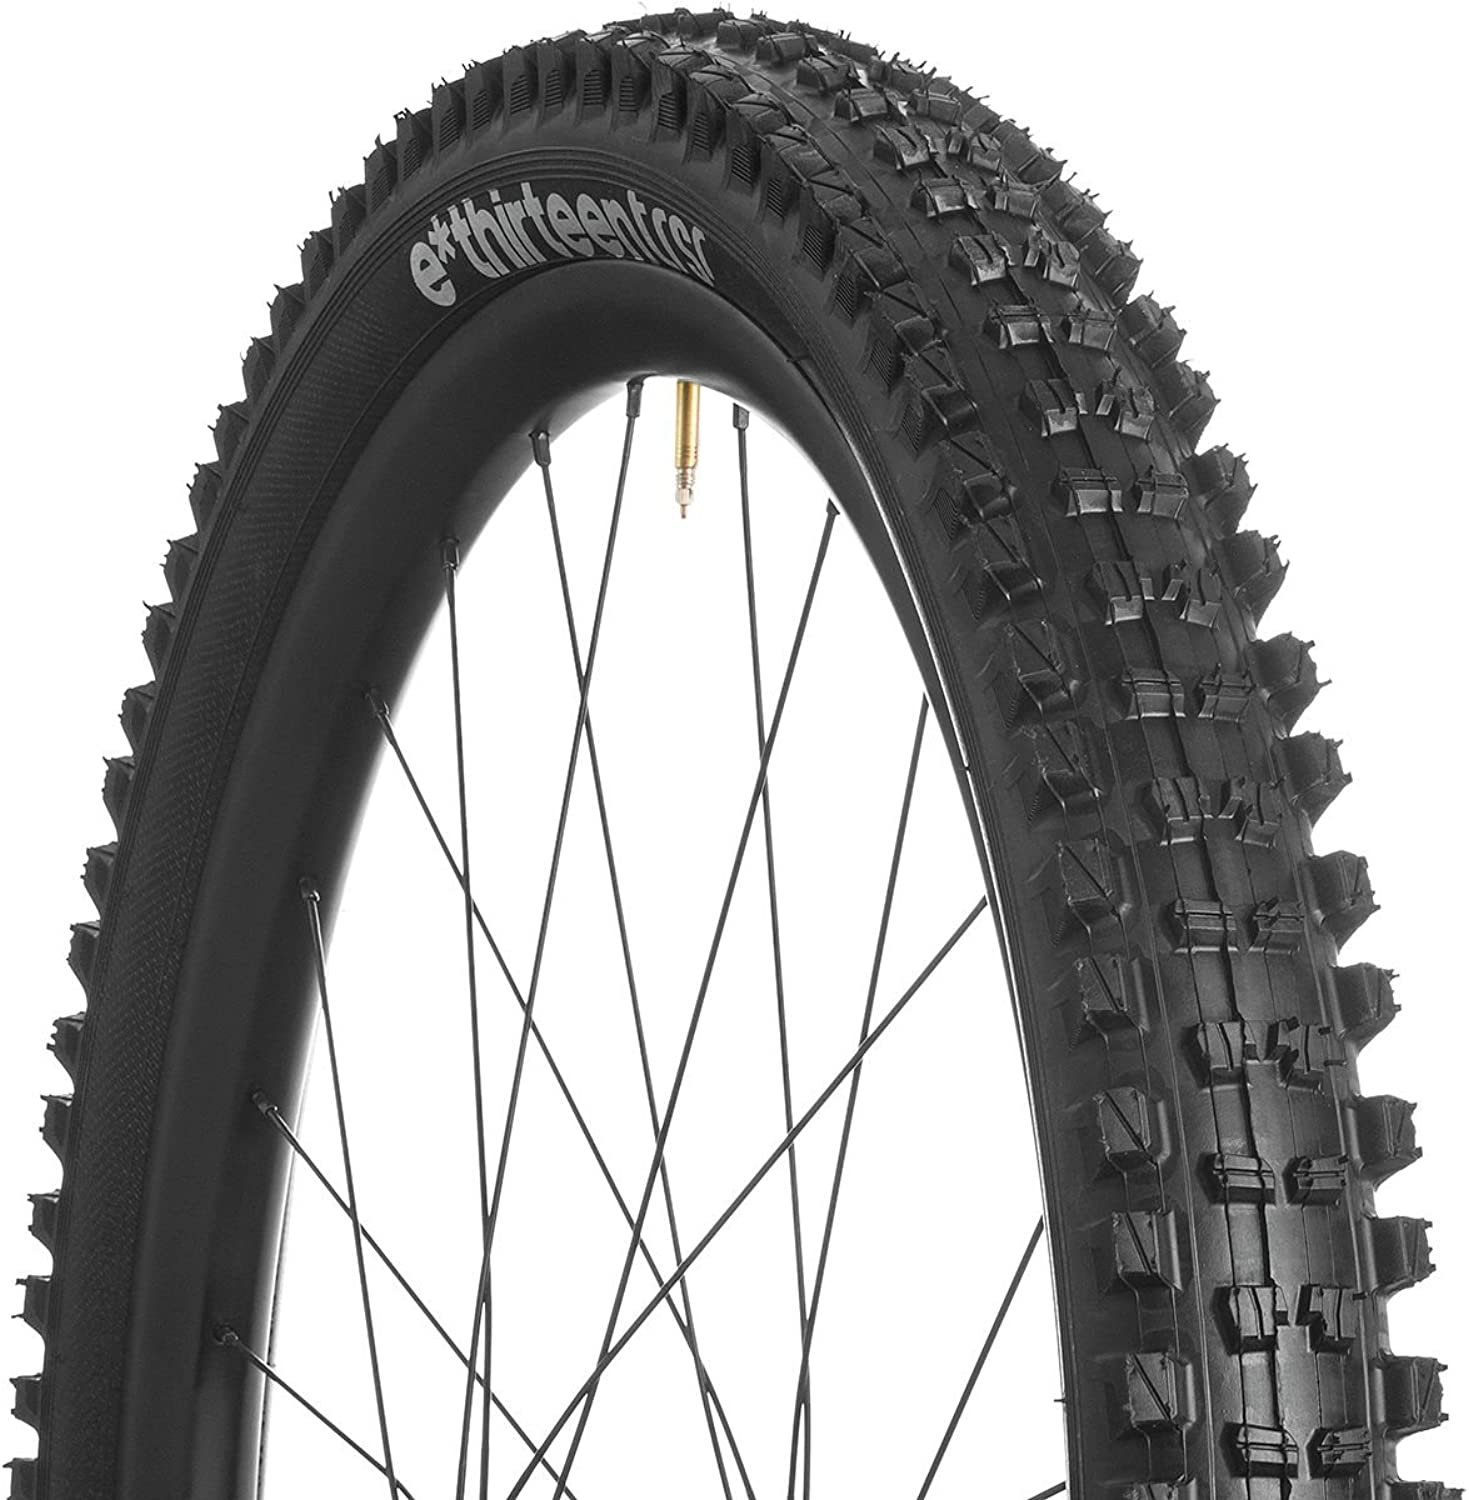 Ethirteen TRS Race Tire, 27.5 x 2.35, Dual Compound, Apex and Aramid Reinforced Casing, Black, Tubeless Compatible